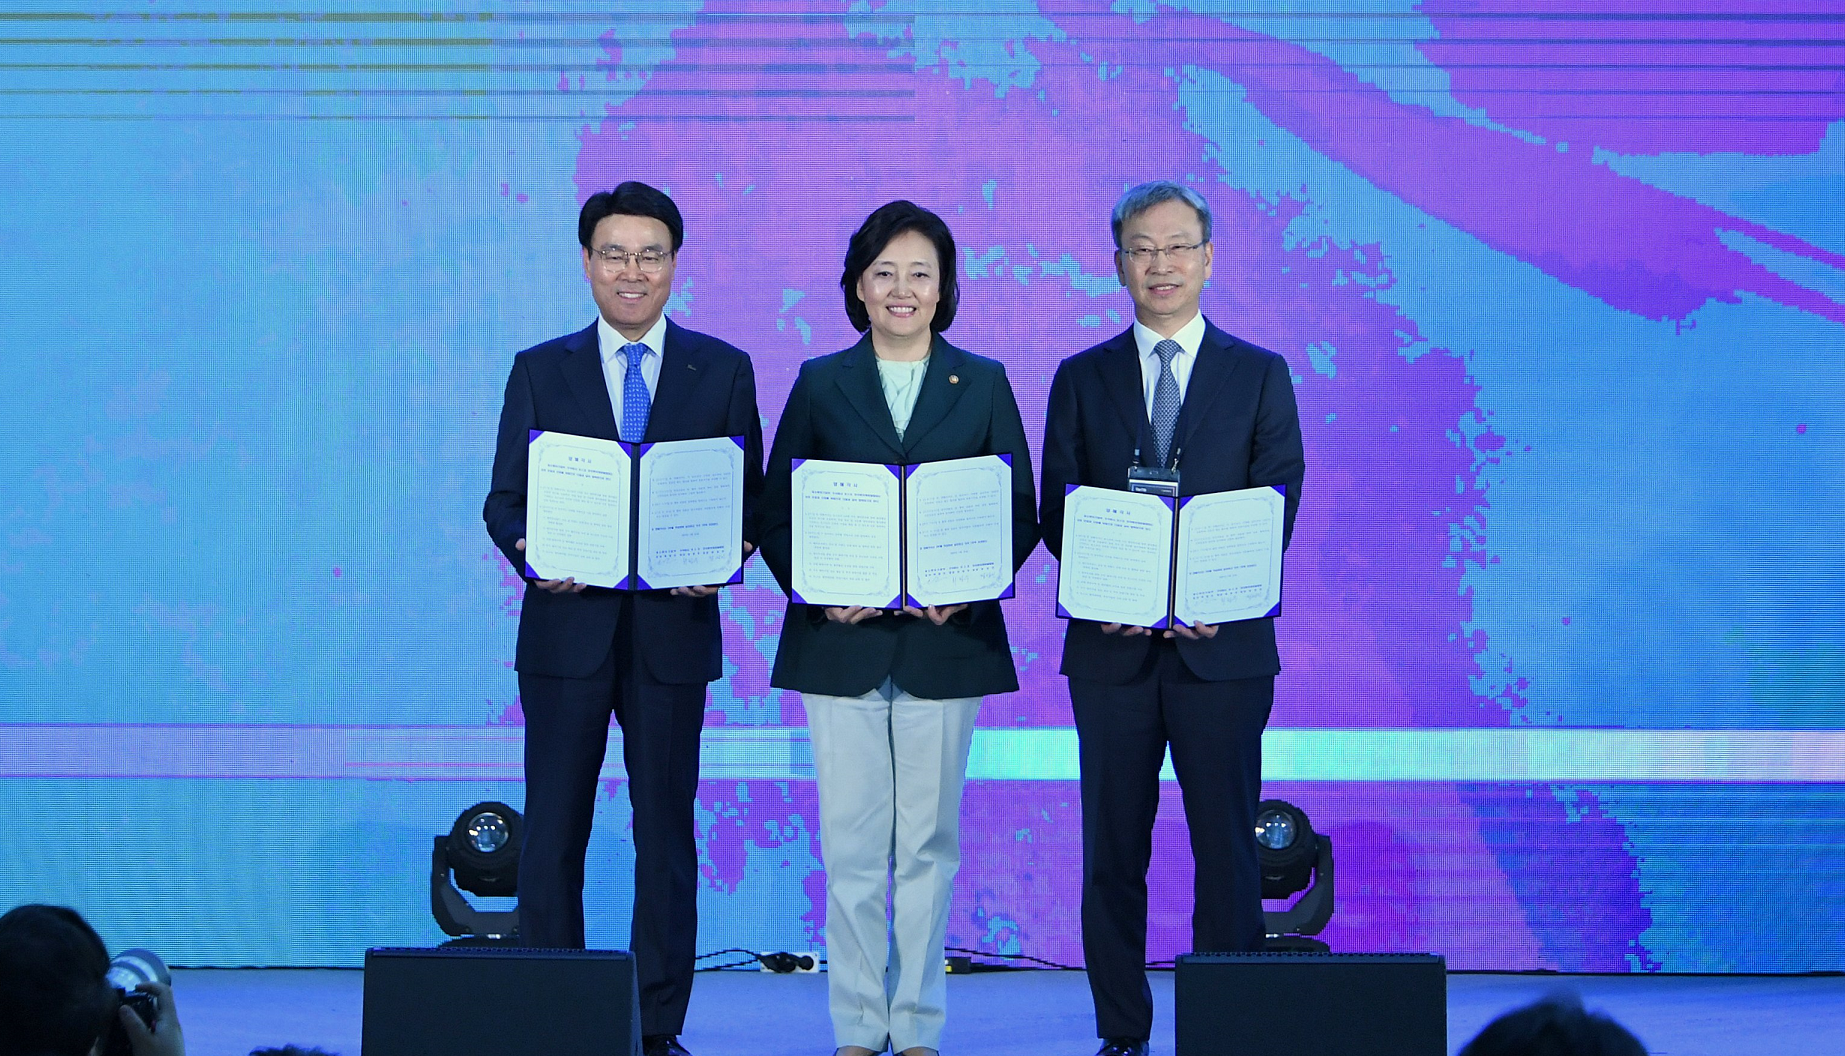 17th Idea Market Place event at POSCO Center in Seoul where POSCO announced its ambitious plan, scaled at 1-trillion KRW, to support aspiring startups. POSCO CEO Jeong-Woo Choi, left, holds an agreement with the MSS Minister Young-Sun Park, center, and KVCA Chairman Sung-In Chung